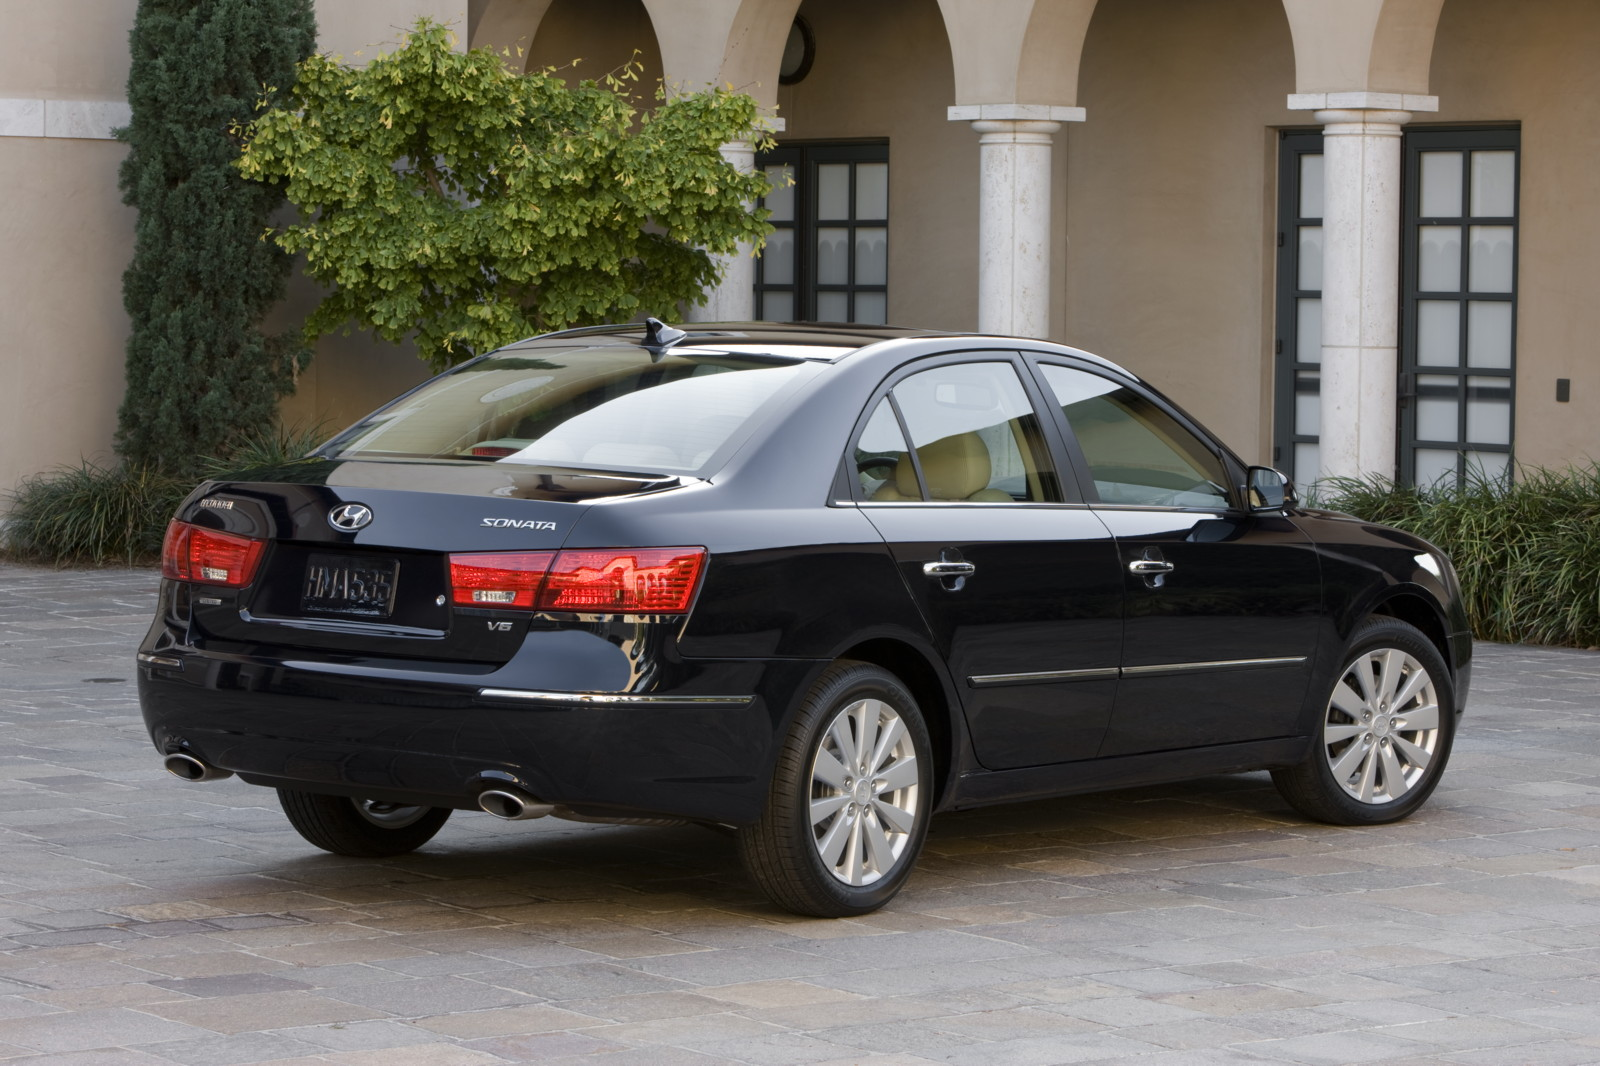 Fire Sale: 2010 Models Dealers Are Desperate To Get Rid Of